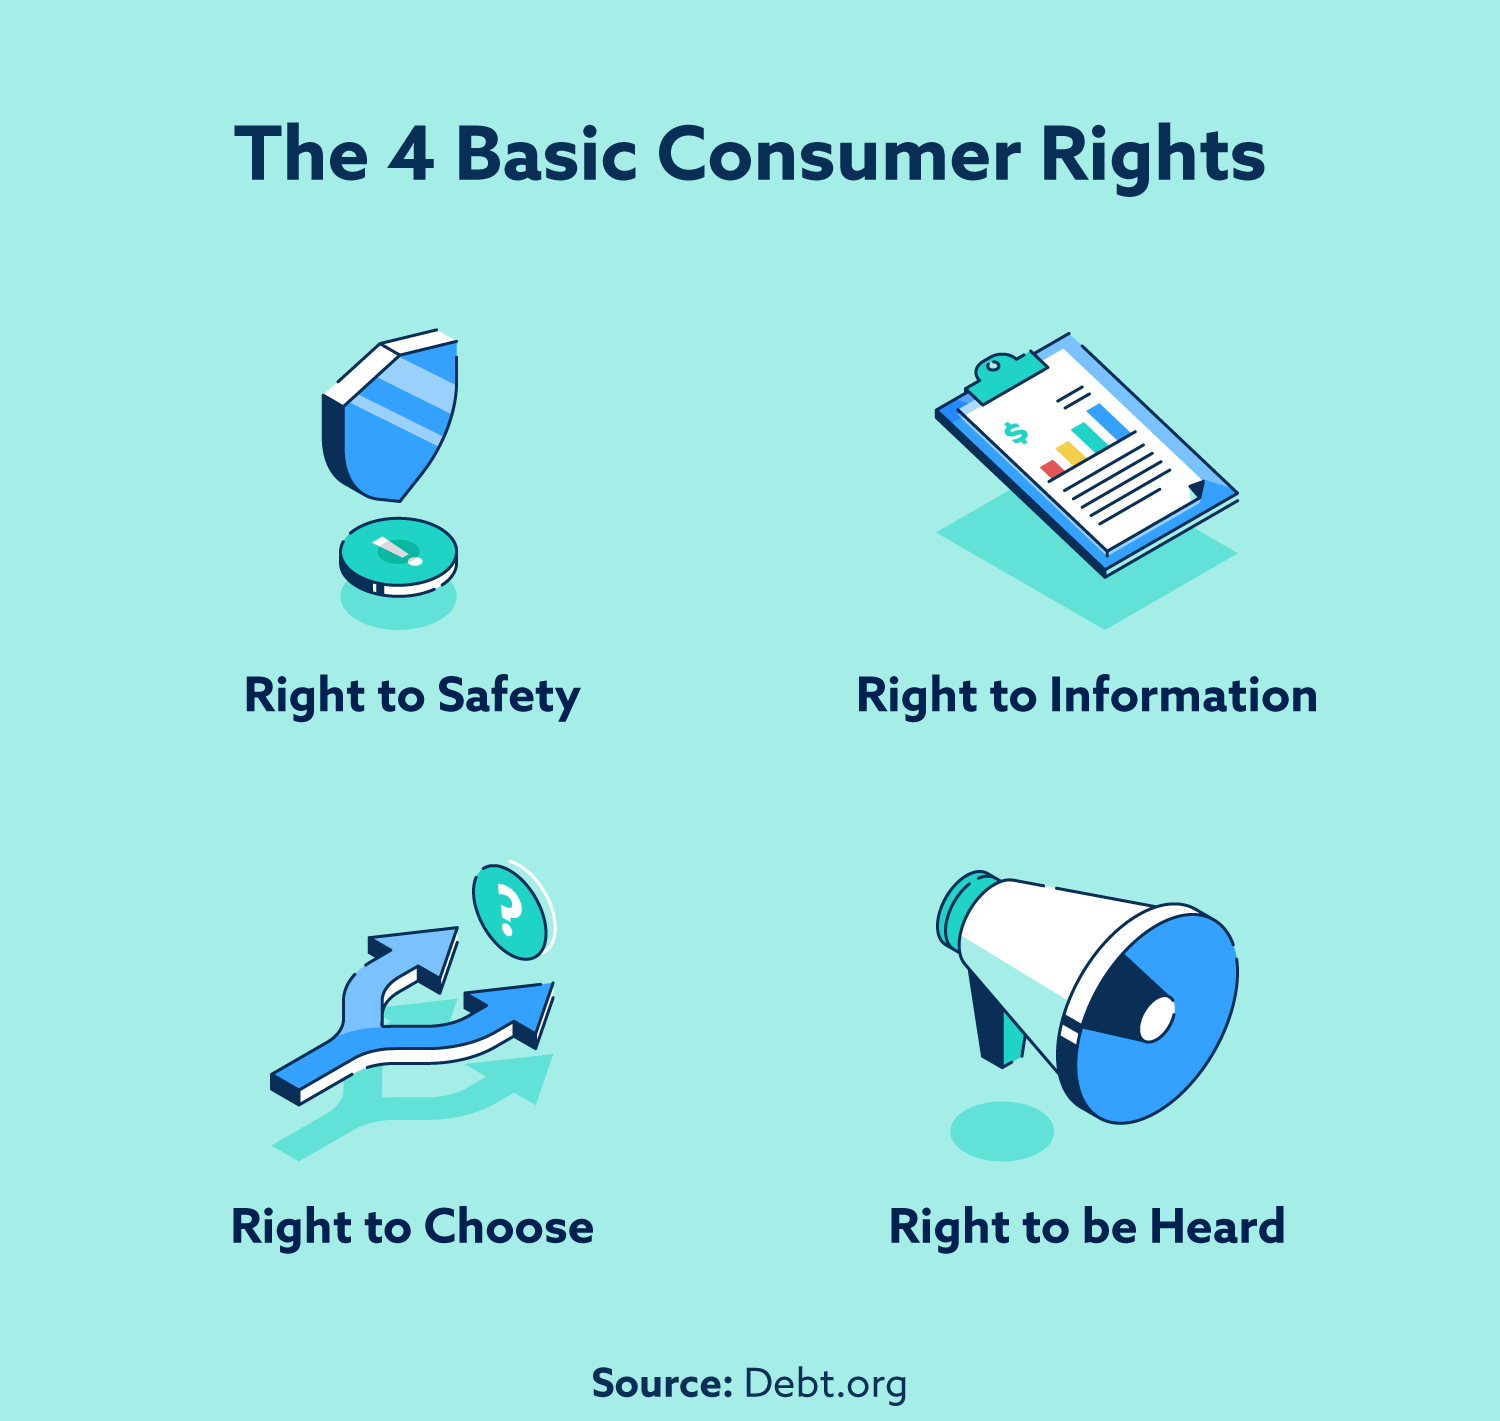 The four basic consumer rights: right to safety, right to information, right to choose, right to be heard.